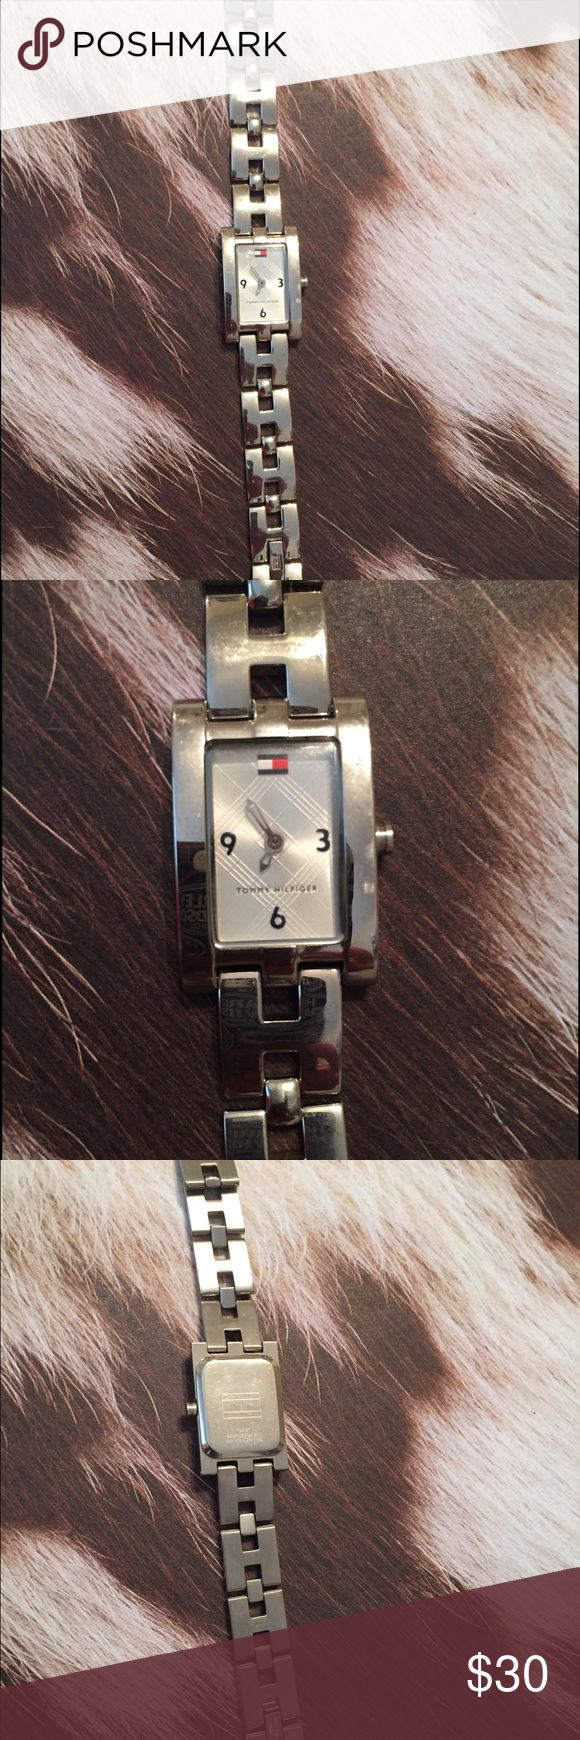 Selling this Ladies Tommy Hilfiger Watch on Poshmark! My username is: klbro. #shopmycloset #poshmark #fashion #shopping #style #forsale #Tommy Hilfiger #Accessories